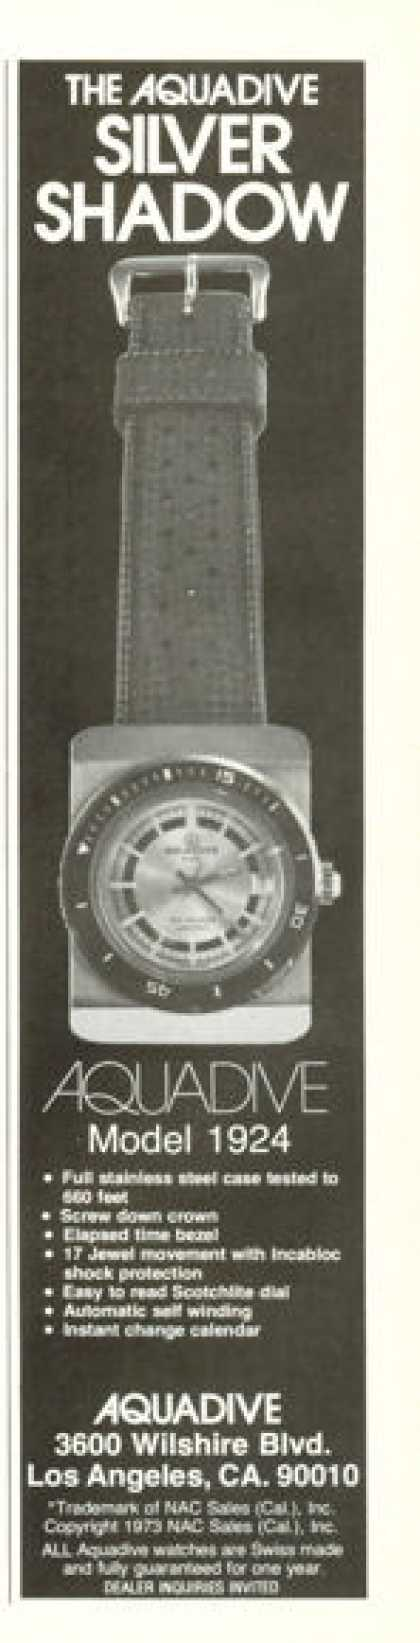 Aquadive Model 1924 Watch Scuba Diver (1976)